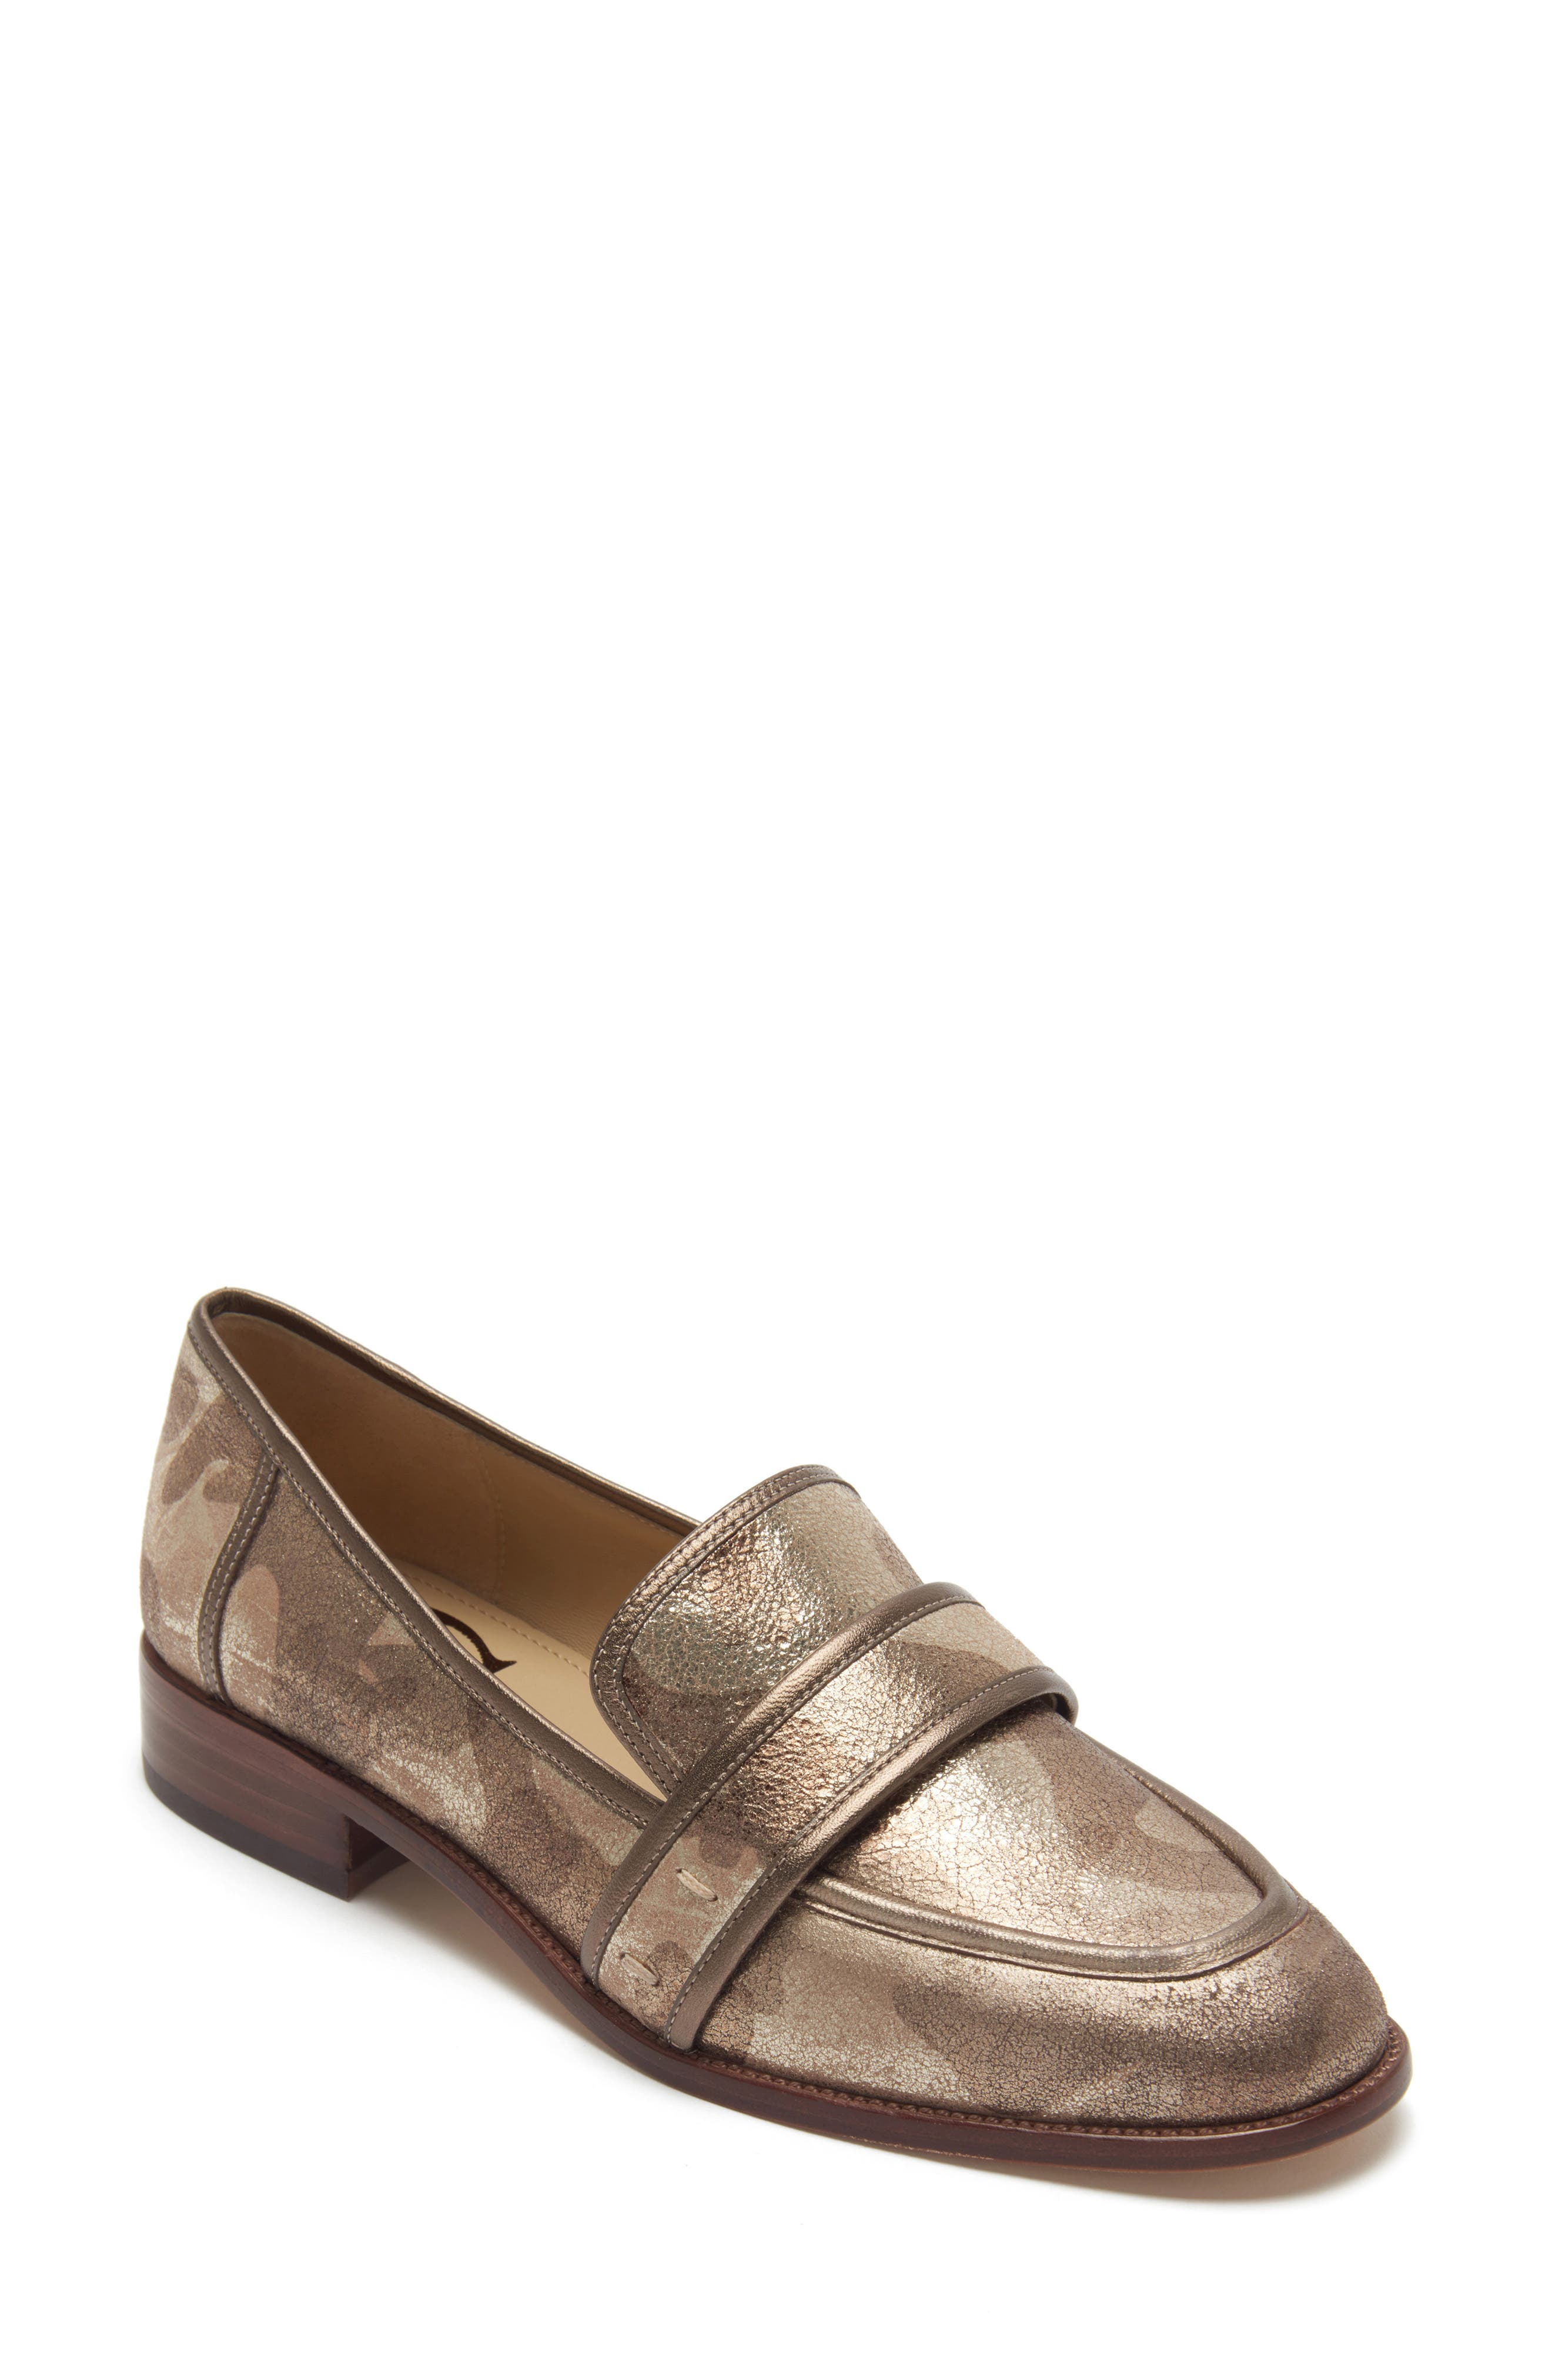 ETIENNE AIGNER Elle Loafer in Bronze Printed